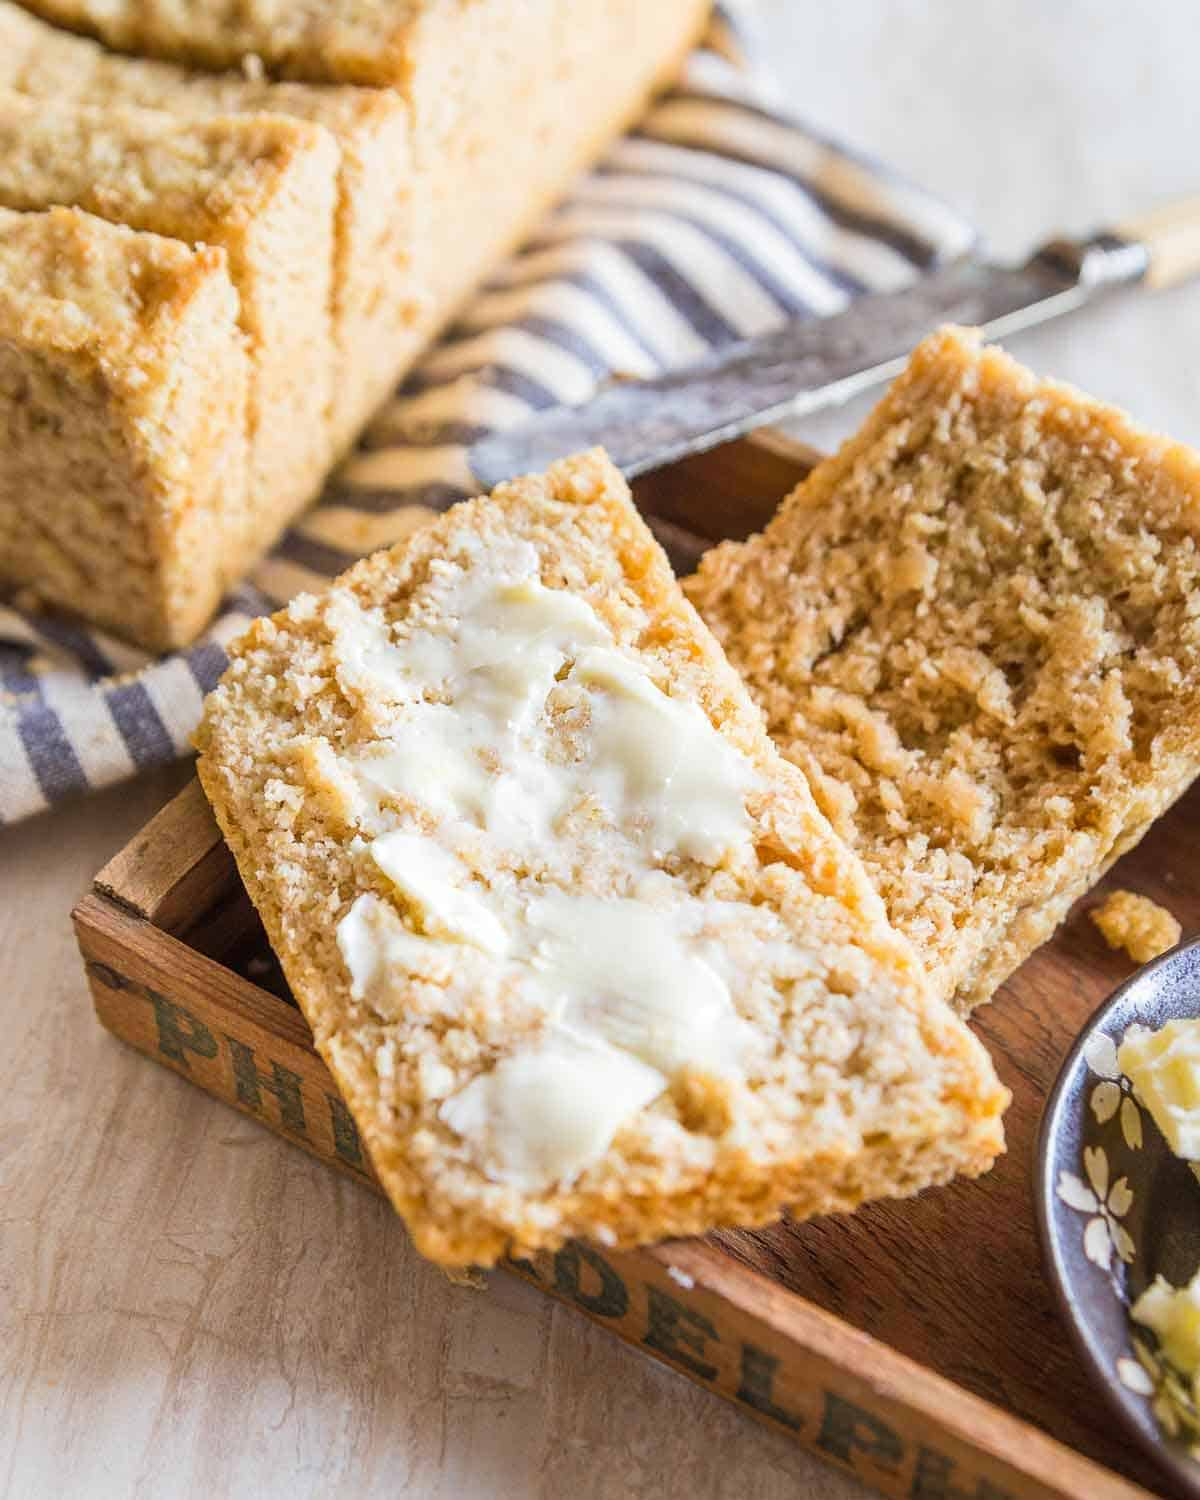 A from scratch oat bread recipe that's simple and delicious.